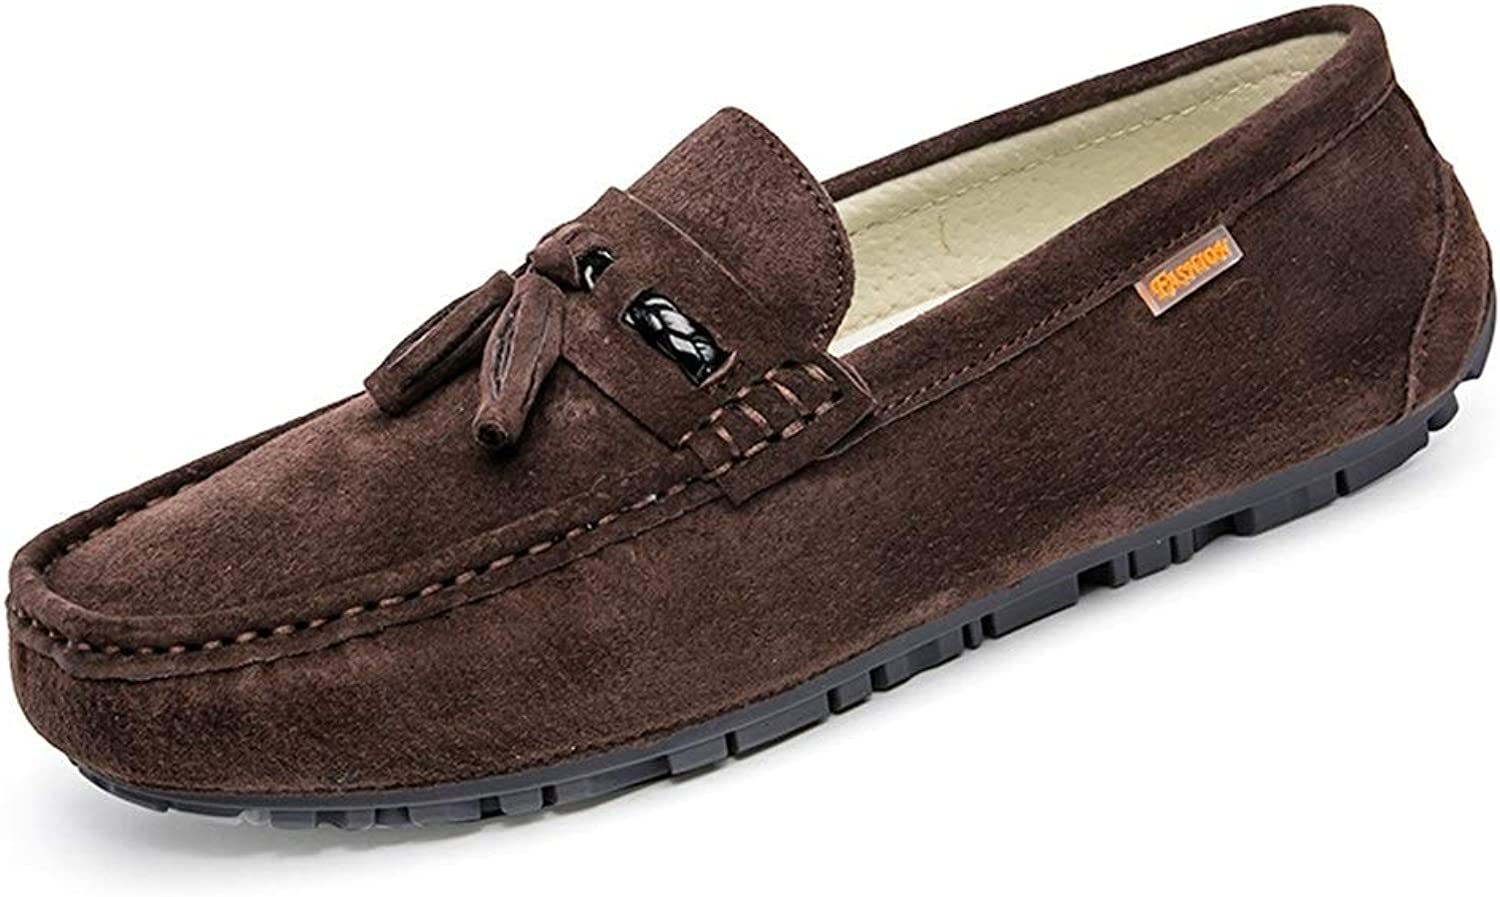 Easy Go Shopping Drive Loafers For Men Boat Moccasins Suede Pigskin Slip On shoes with Classical Tassel Fashion Breathable Lightweight Cricket shoes (color   Brown, Size   7 UK)